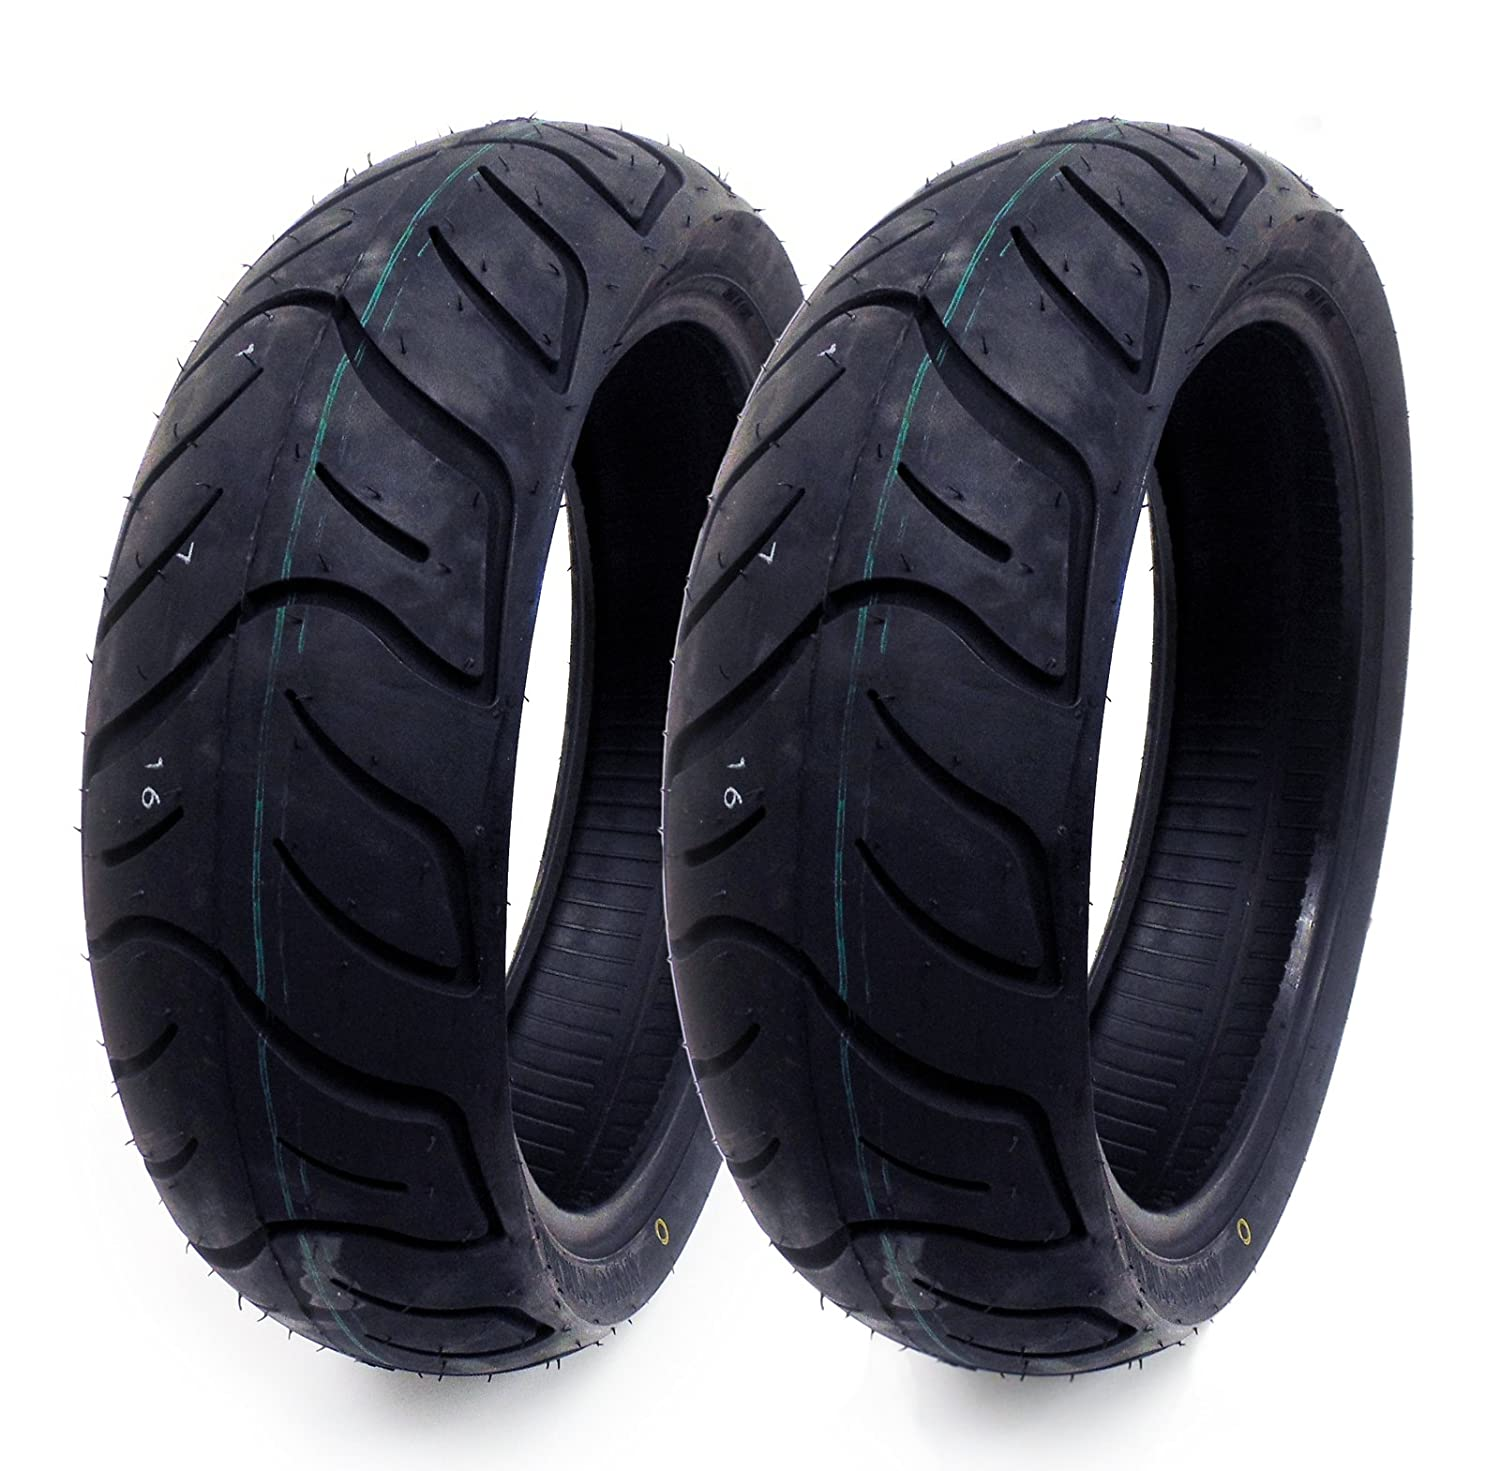 SET OF TWO: Tire 130/60-13 Tubeless Front/Rear Motorcycle Scooter Moped MMG